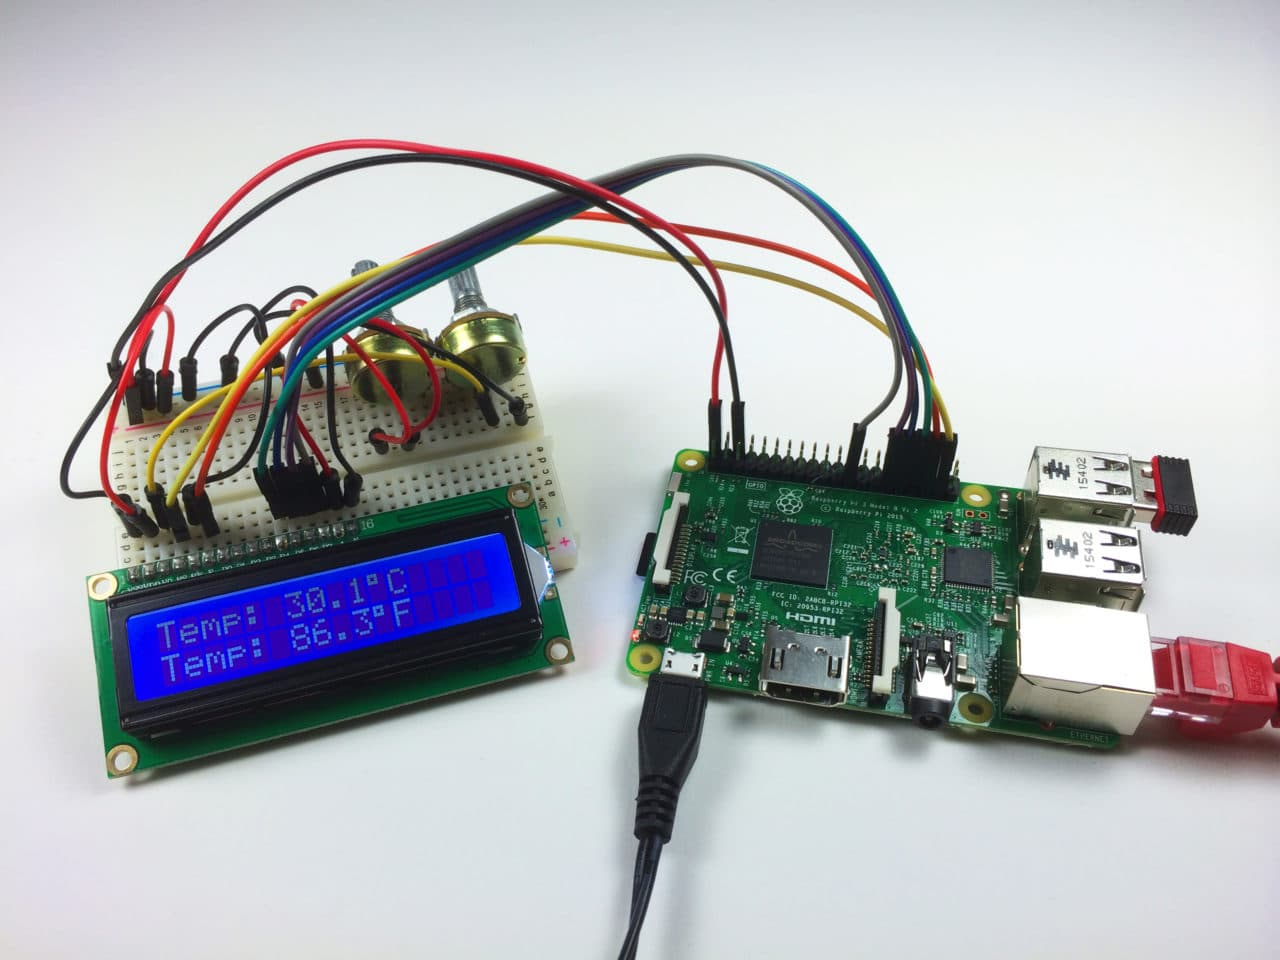 How To Setup An I2c Lcd On The Raspberry Pi Circuit Basics Spi Using Wiringpi And Program It With C